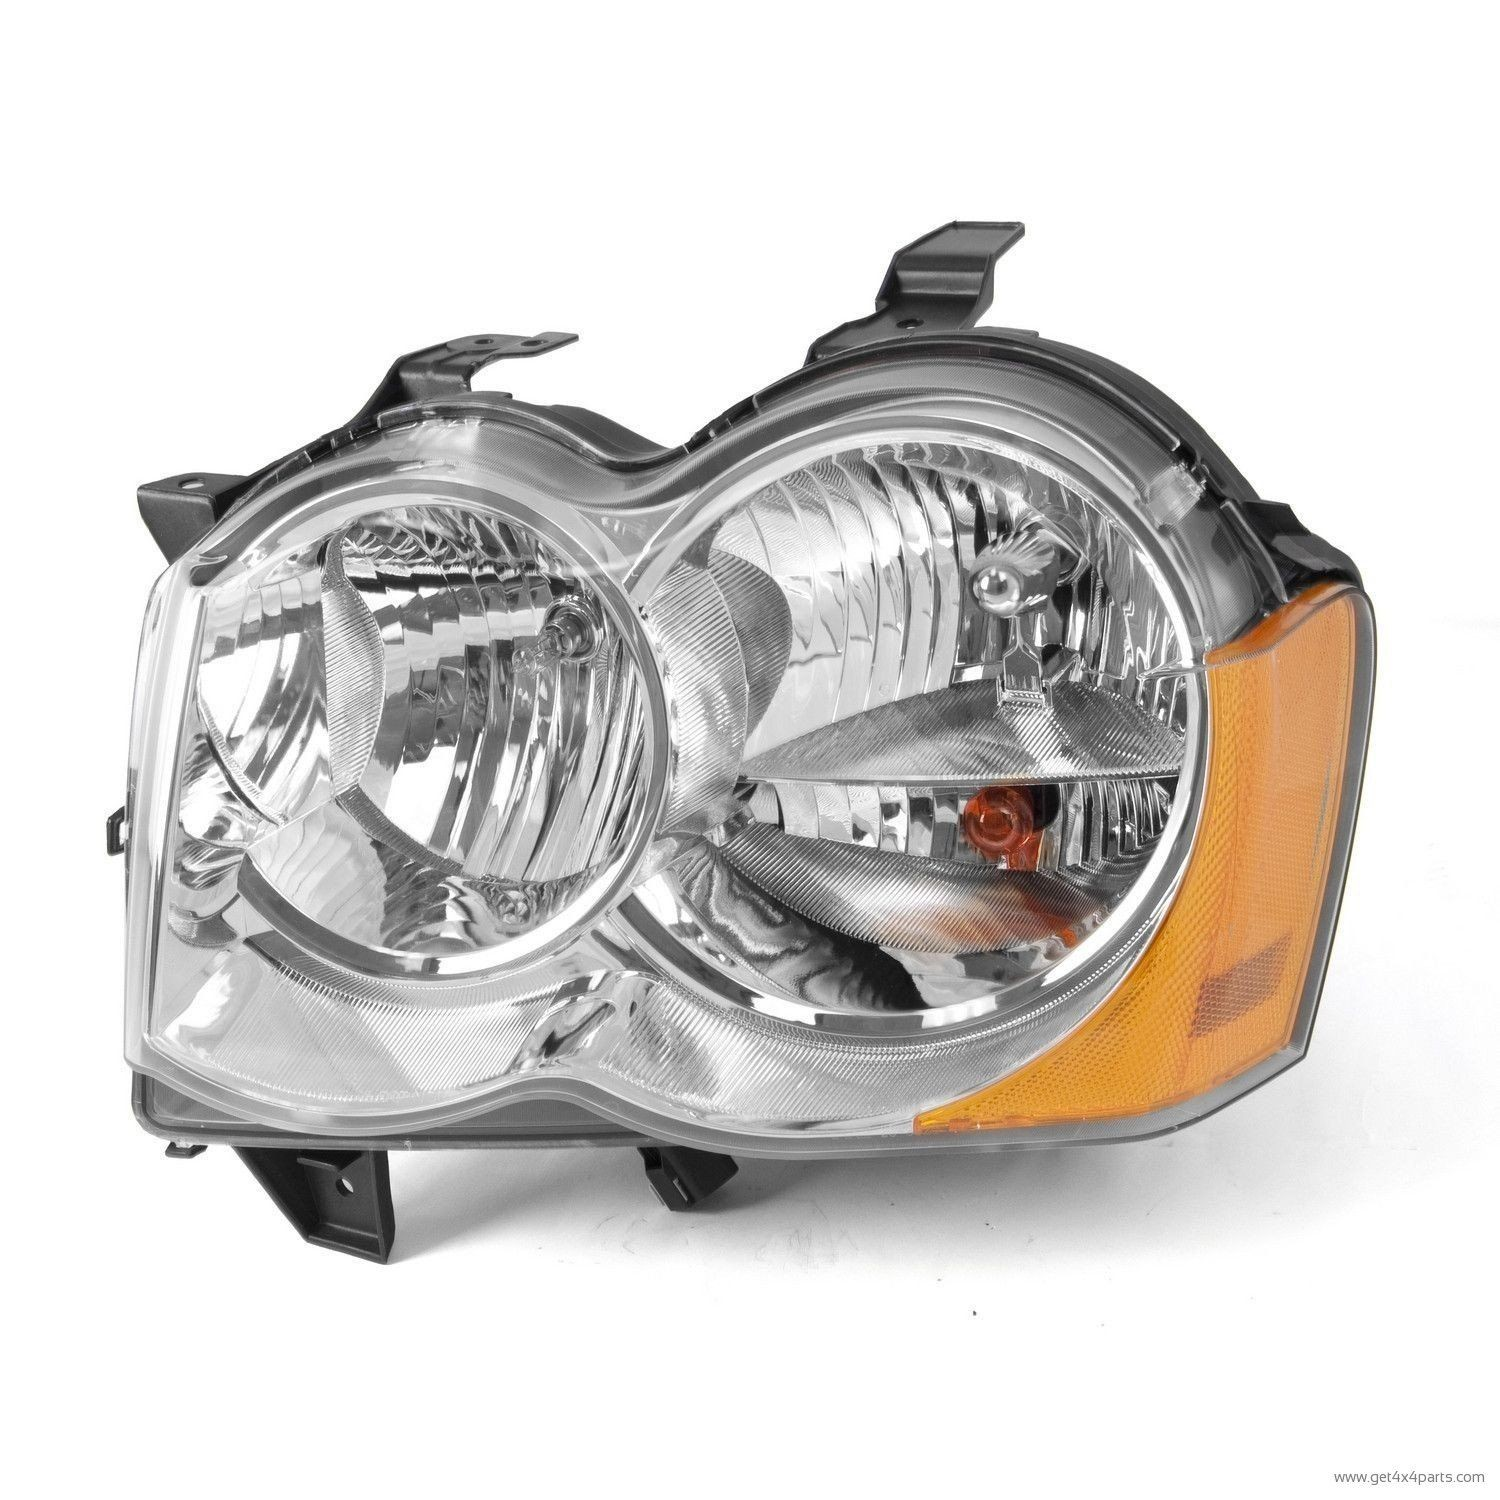 Buy LH Headlight without Fog Lights 05 10 Jeep Grand Cherokee WK at Get4x4Parts for only $ 209 34